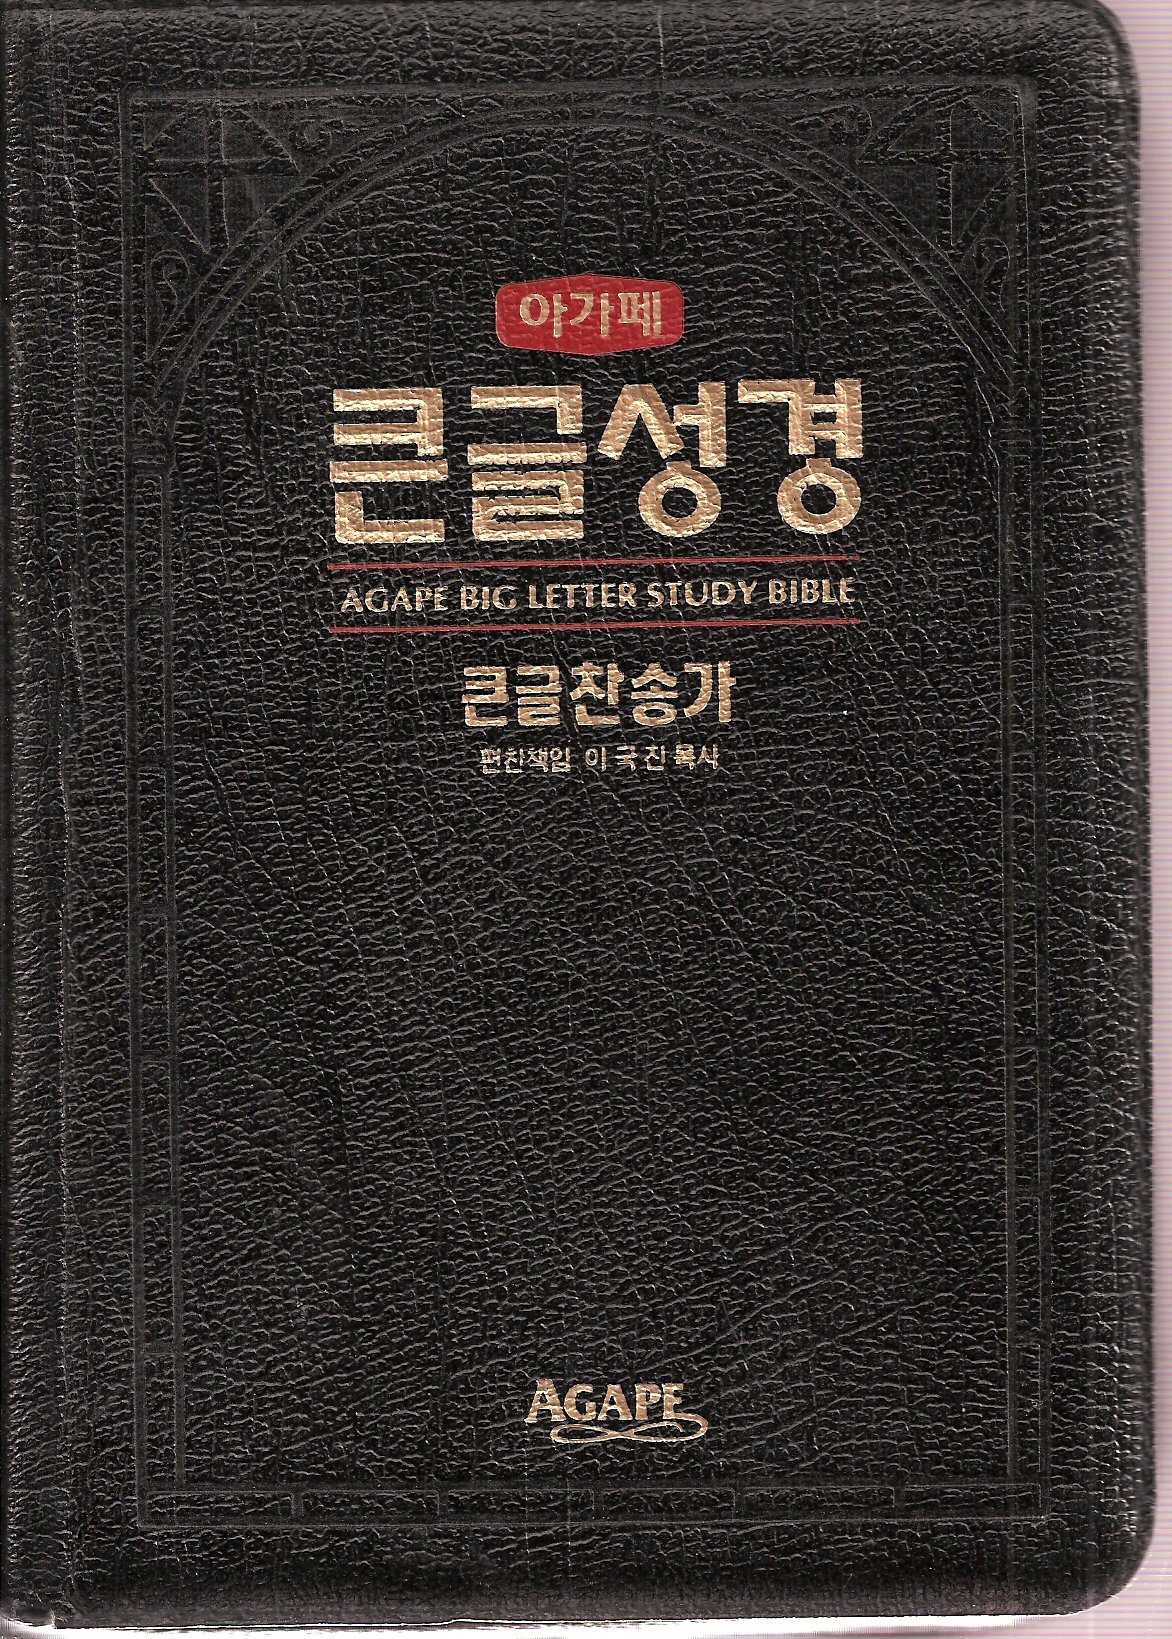 Korean Agape Big Letter Study Bible   The Old Testament and New